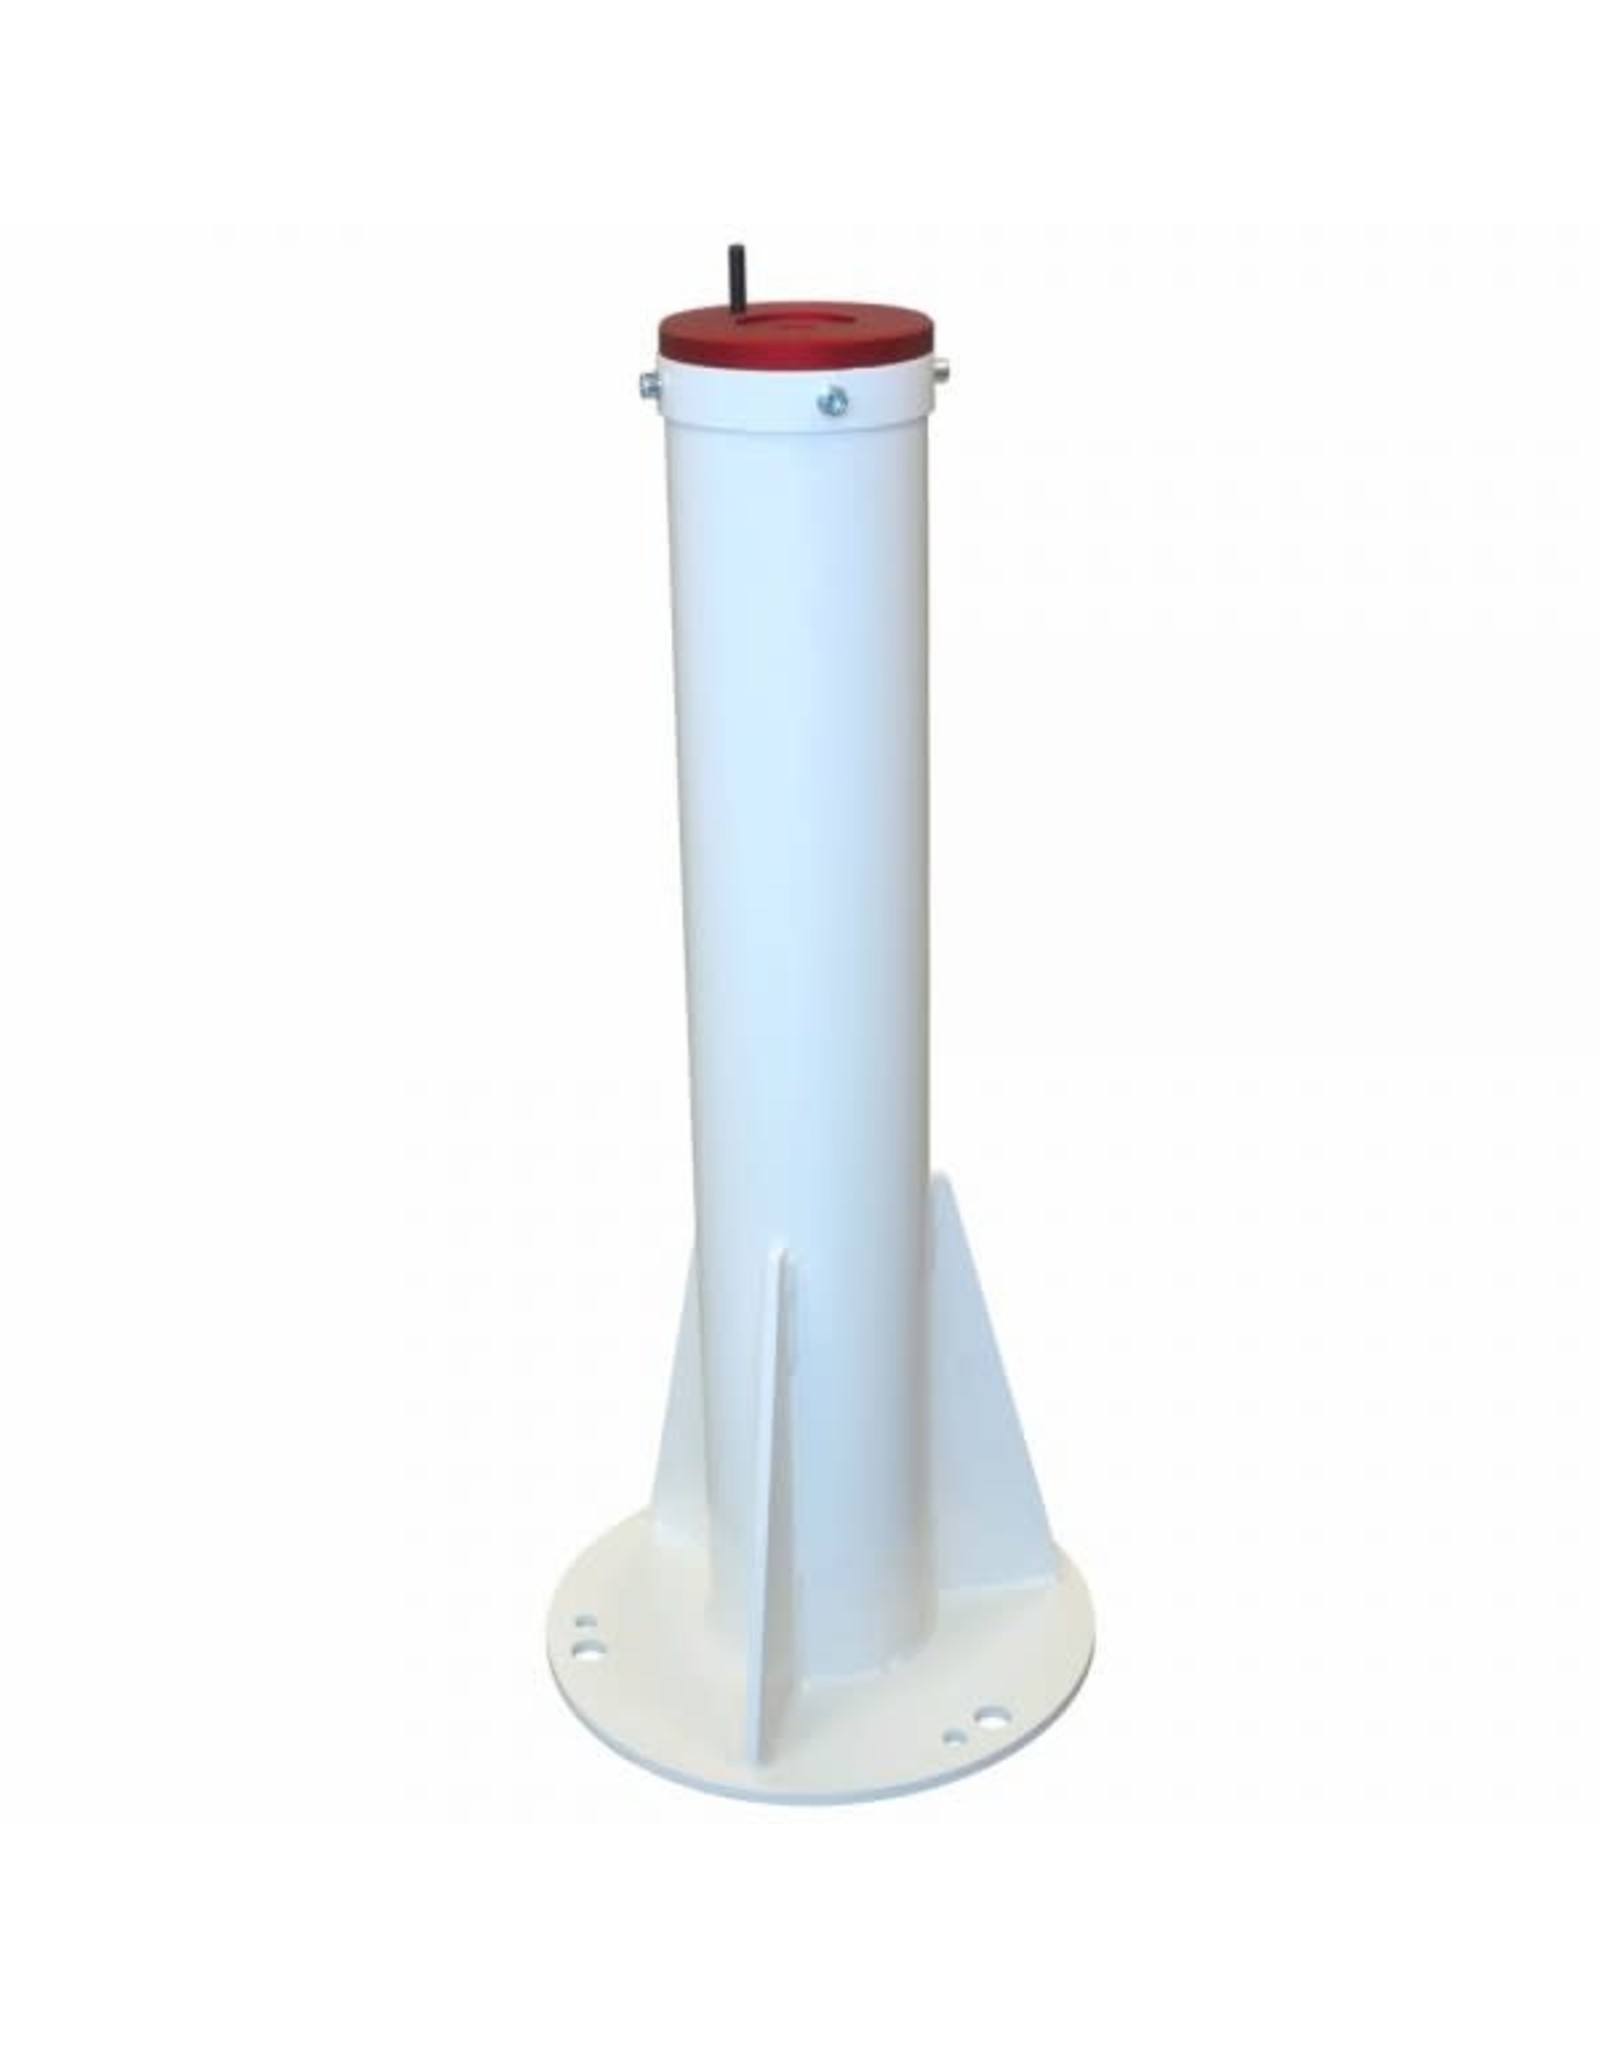 PrimaLuceLab PrimaLuceLab C82 Pier for Concrete Base with adapter for EQ5/ HEQ5/ AZ-EQ5